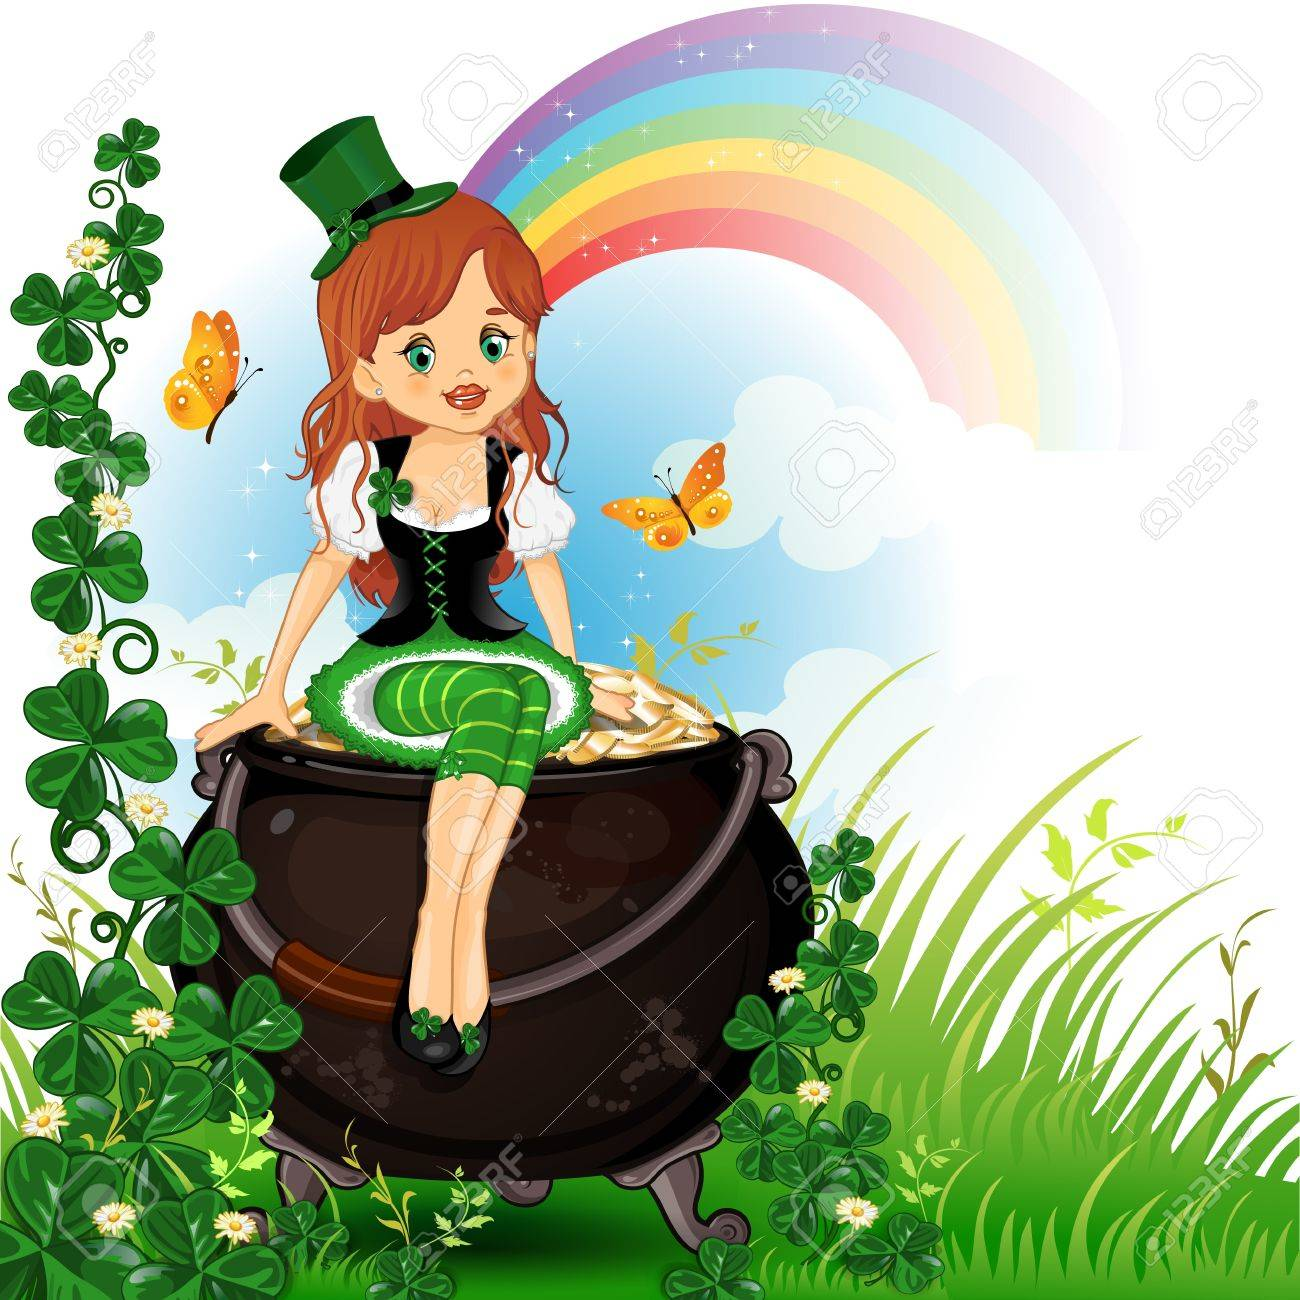 Elf girl sitting on pot of gold with grass and clover- Stock Vector - 18002226